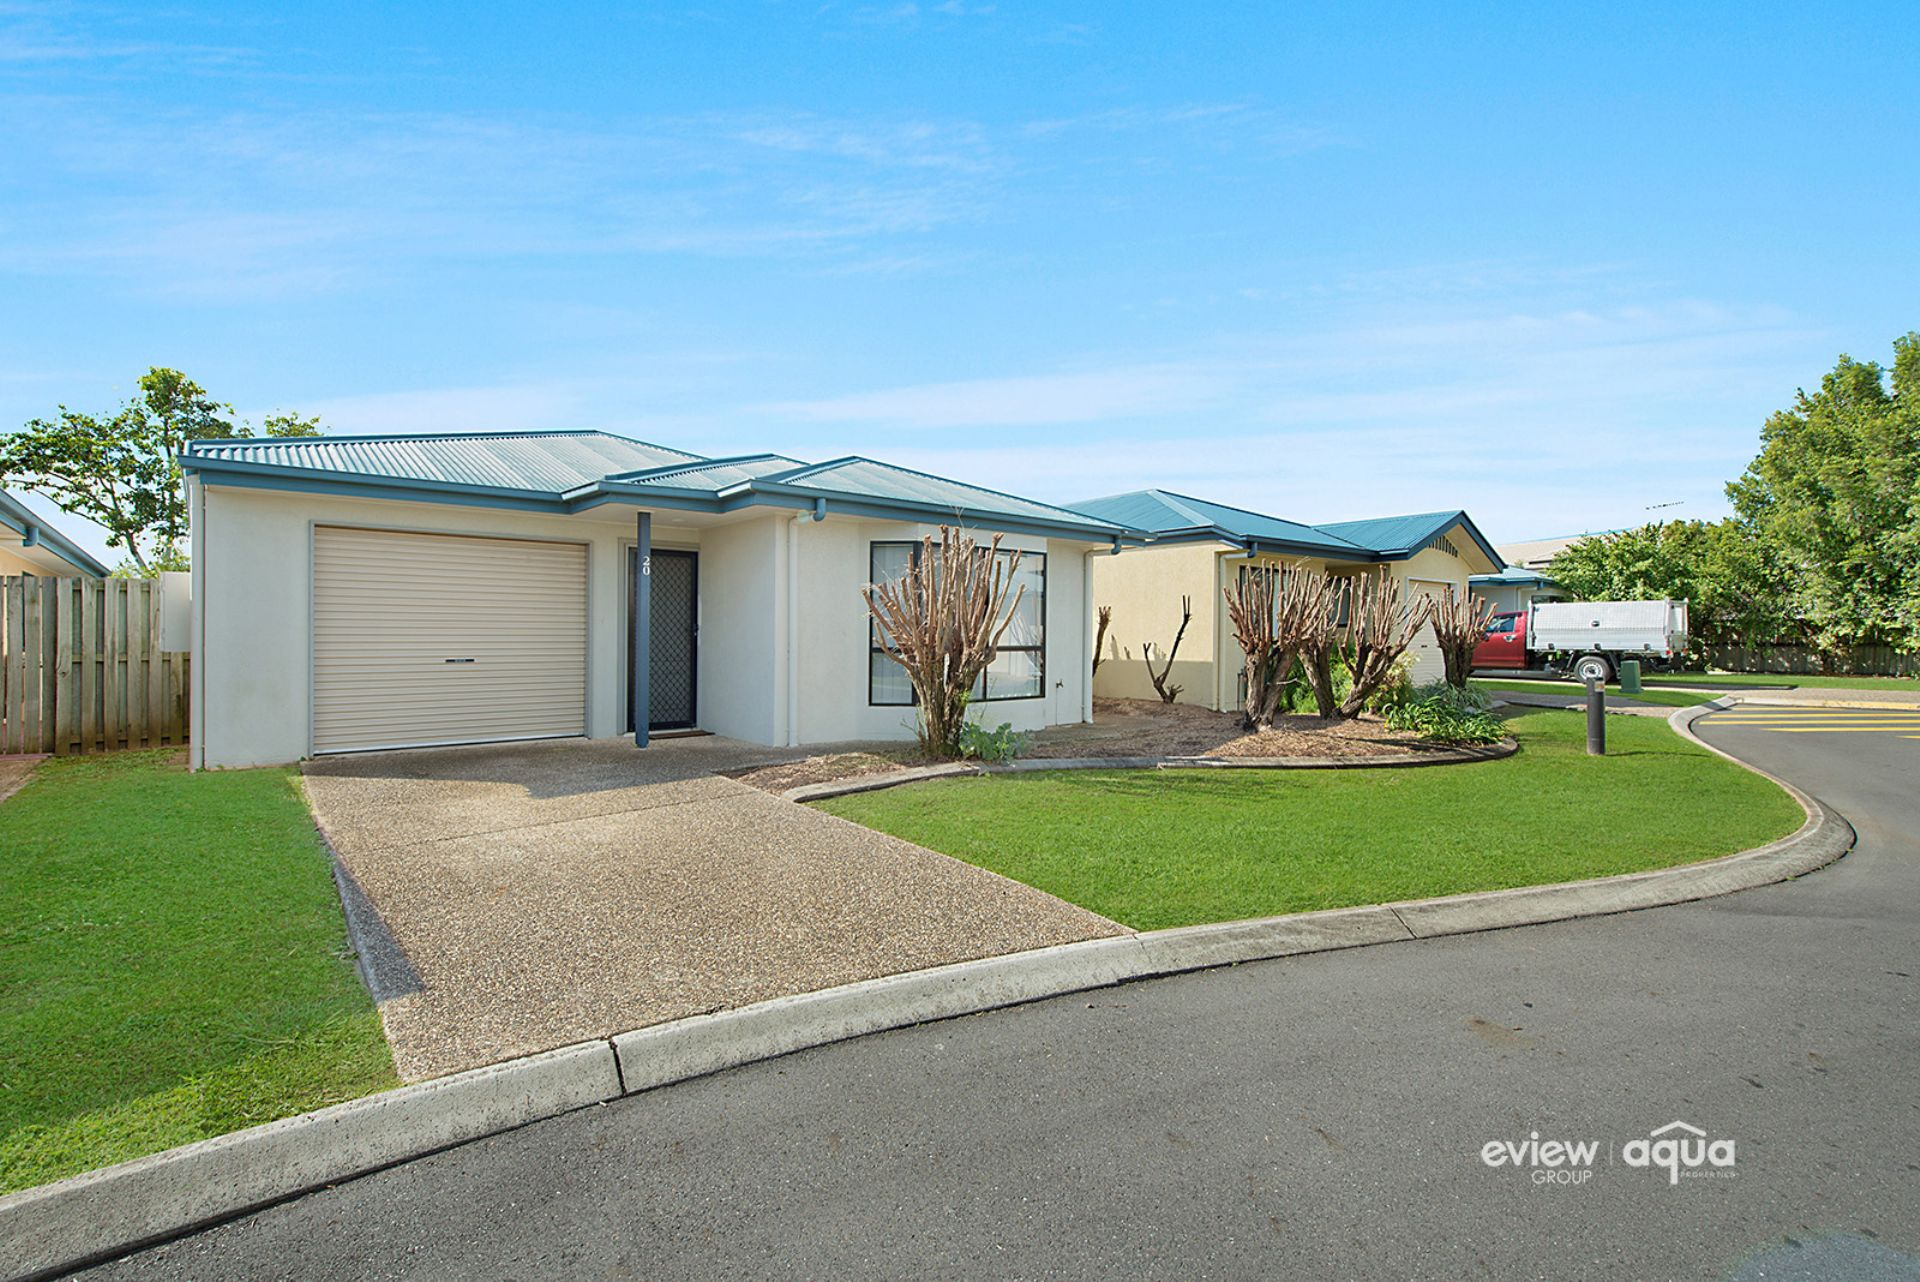 20/128 Webster Road, DECEPTION BAY, QLD, 4508 - Image